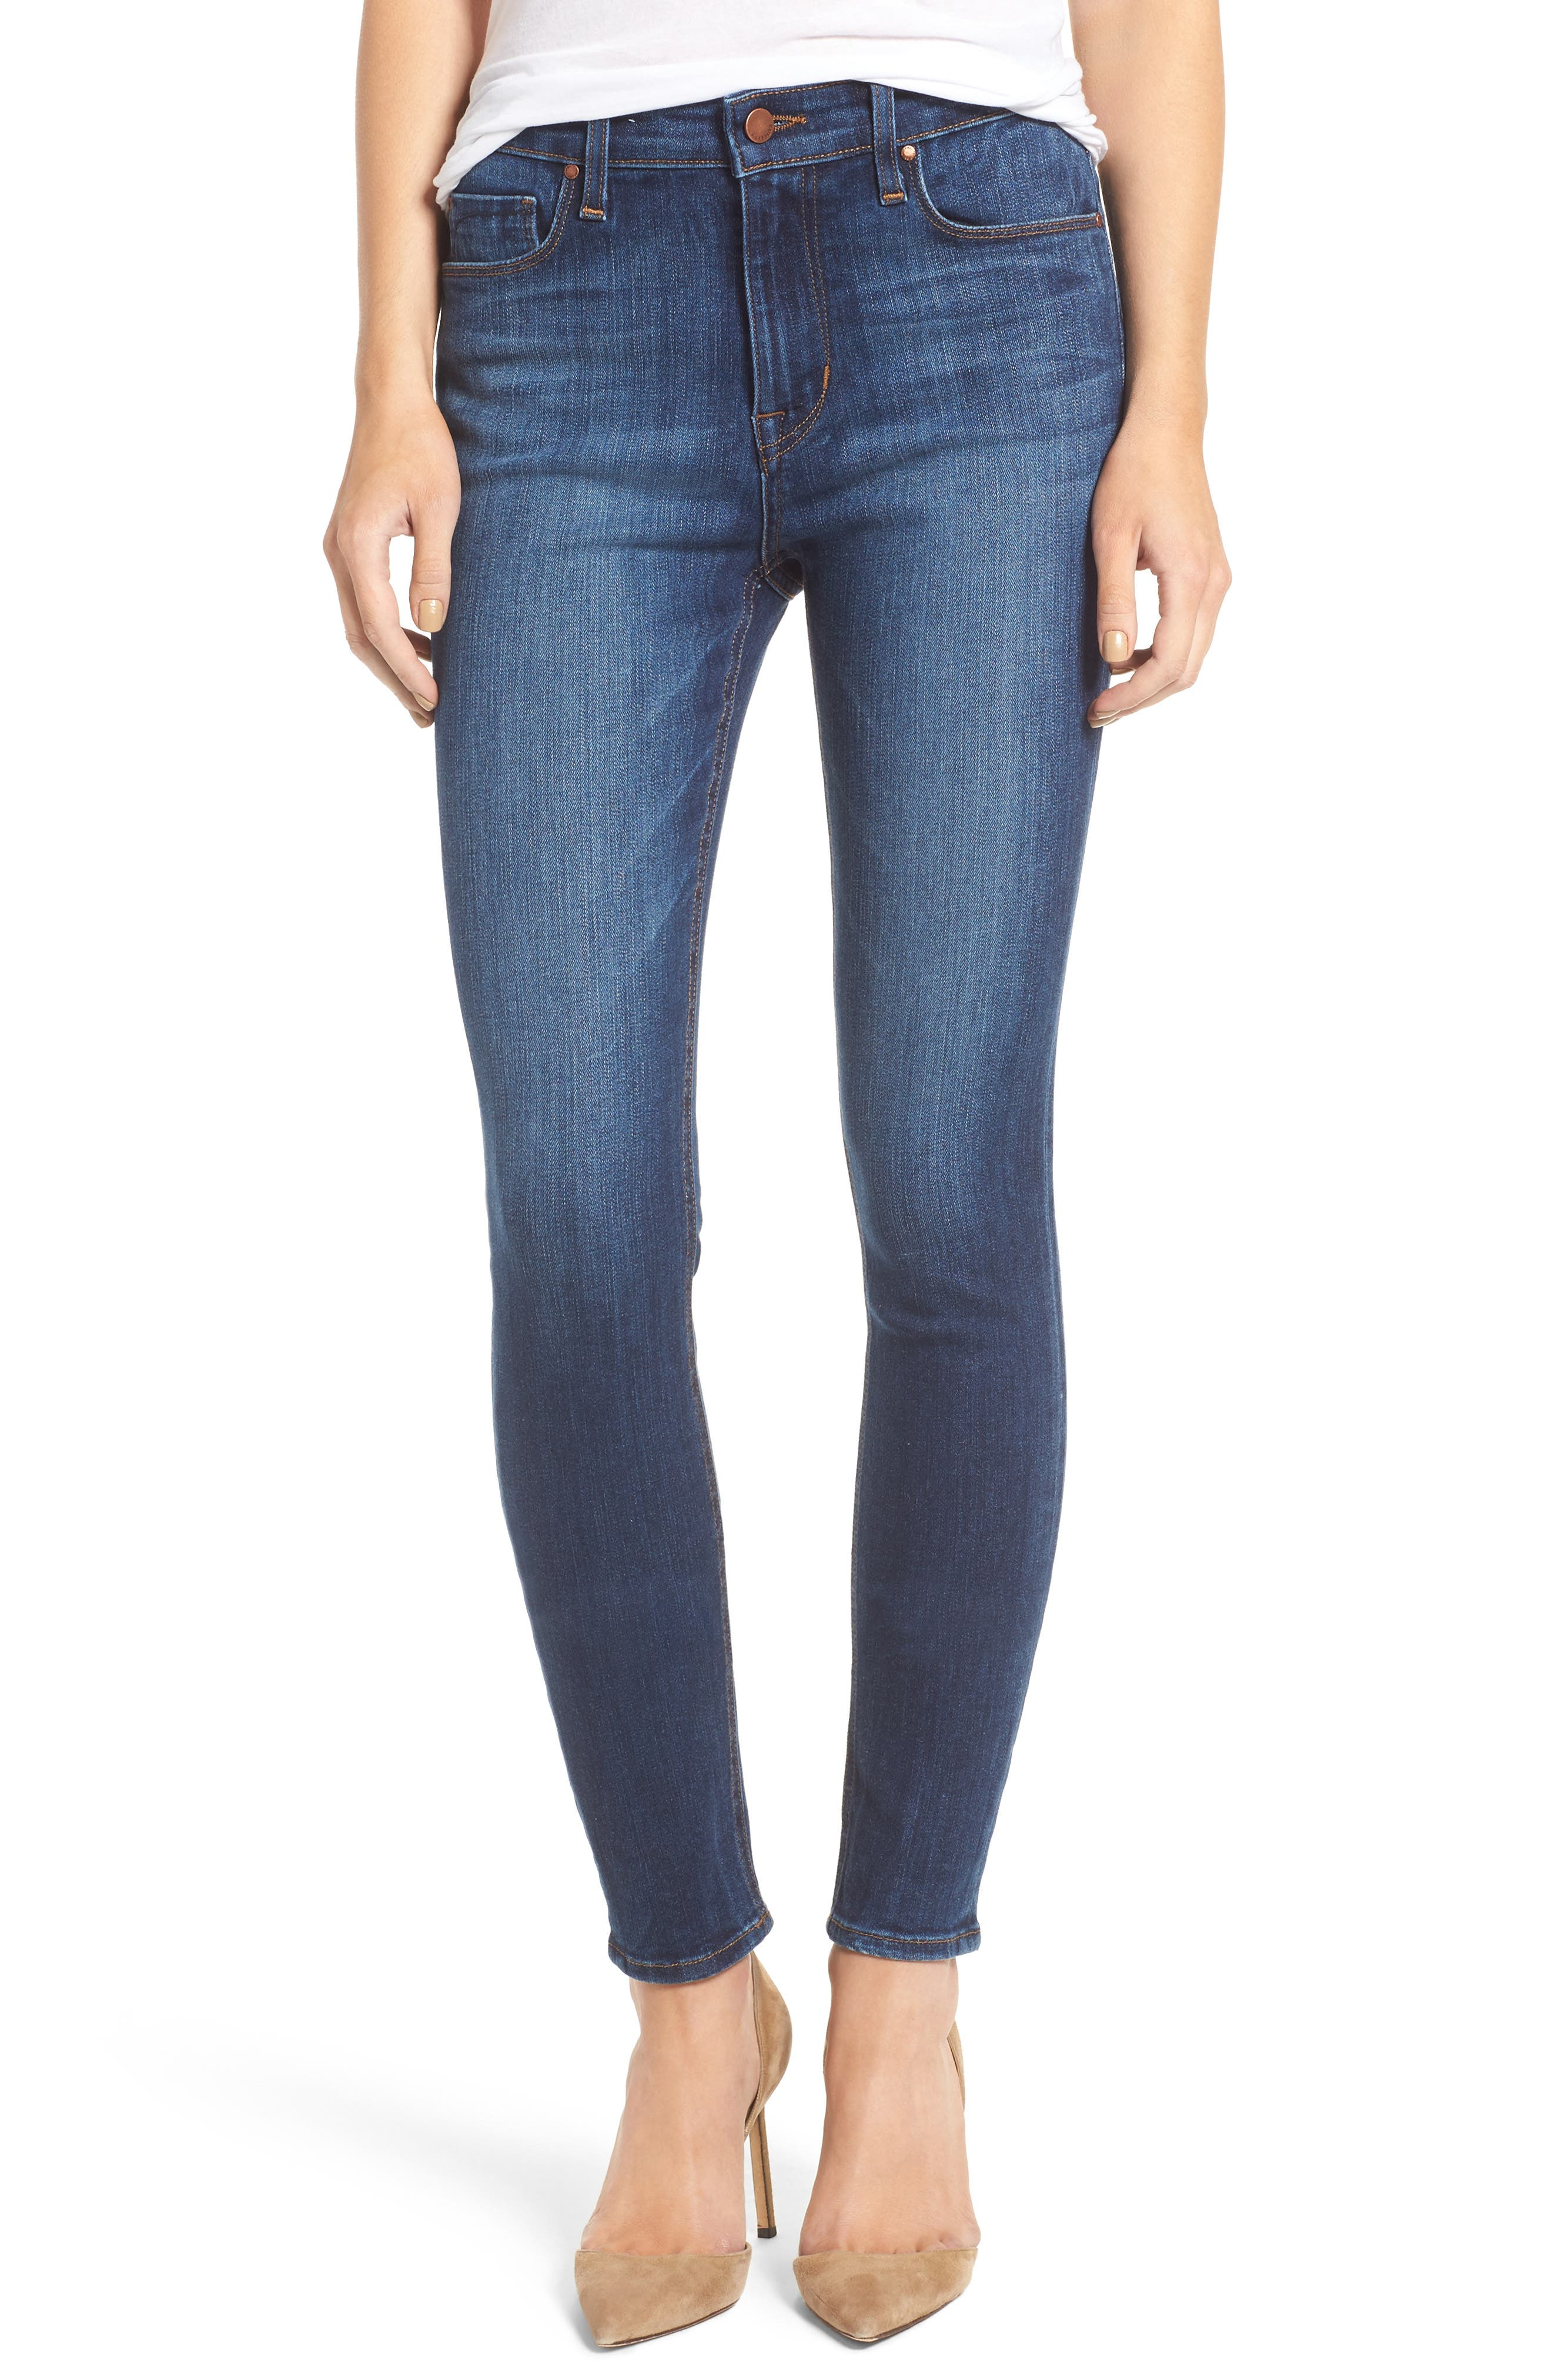 Alternate Image 1 Selected - Fidelity Denim Gwen High Waist Skinny Jeans (Liverpool)